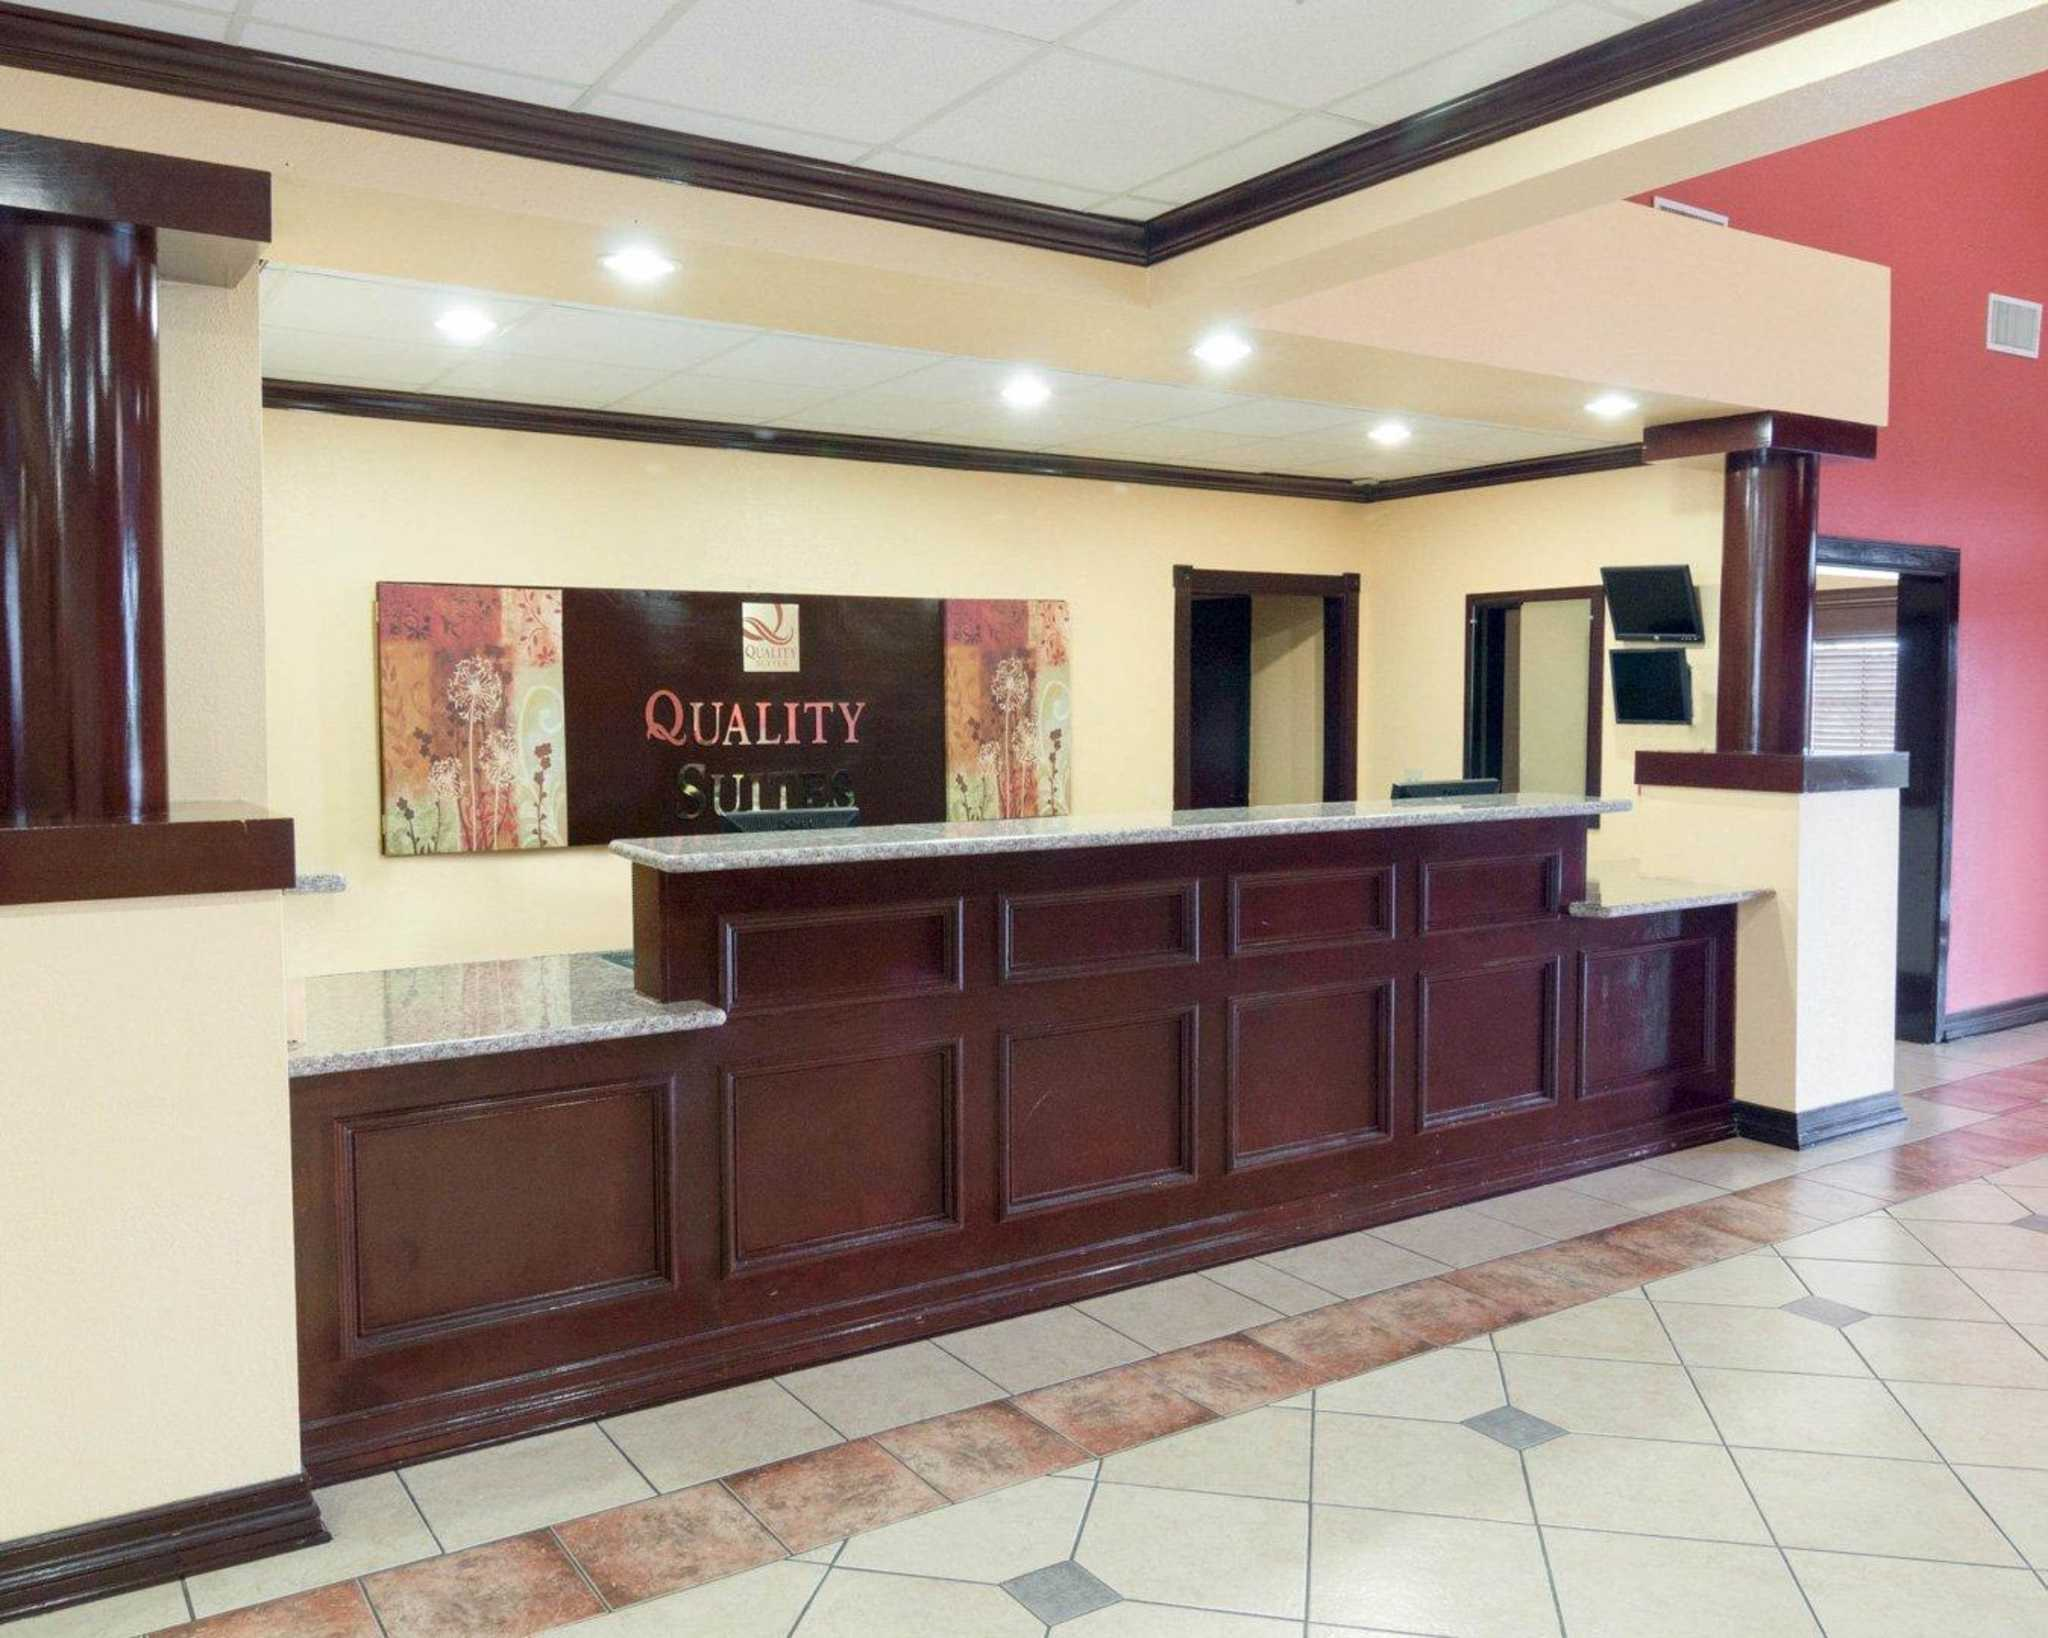 Quality Suites Intercontinental Airport West Houston